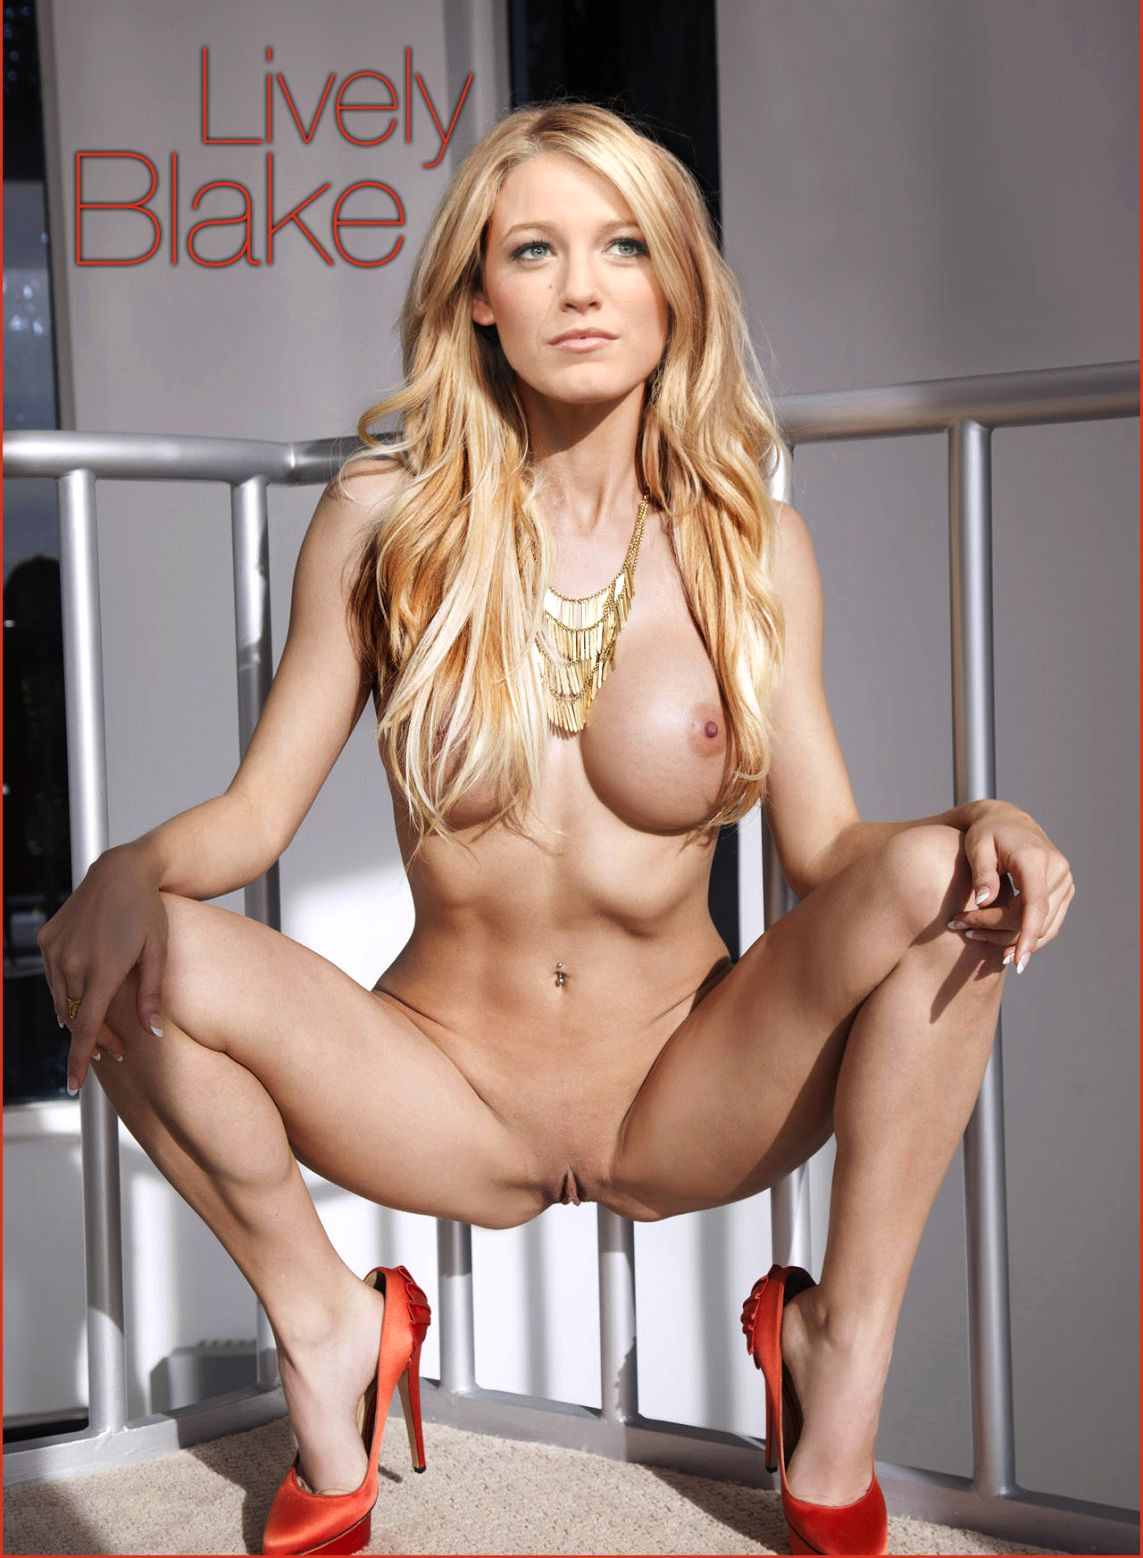 Redhead cum blake lively naked sexy pics nipples